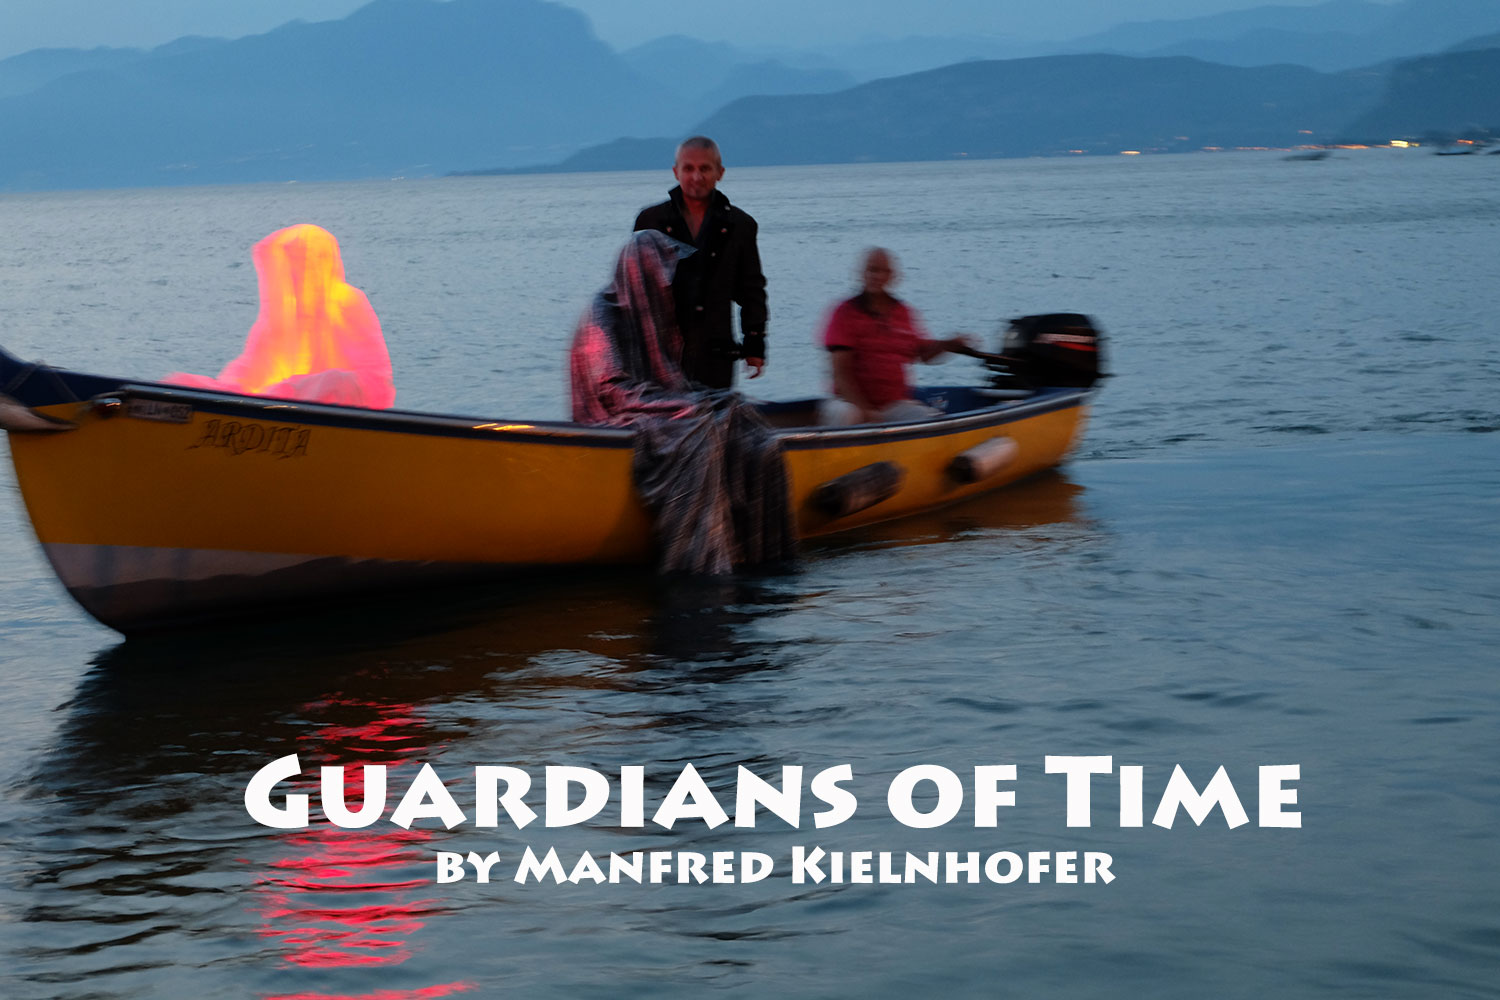 lazise-largo-de-guarda-italia--kouba-designkooperative-austria-guardians-of-time-manfred-kili-kielnhofer-contemporary-art-design-arts-arte-sculpture-theater-foto-film-performnce-avalon-ferryman-3800